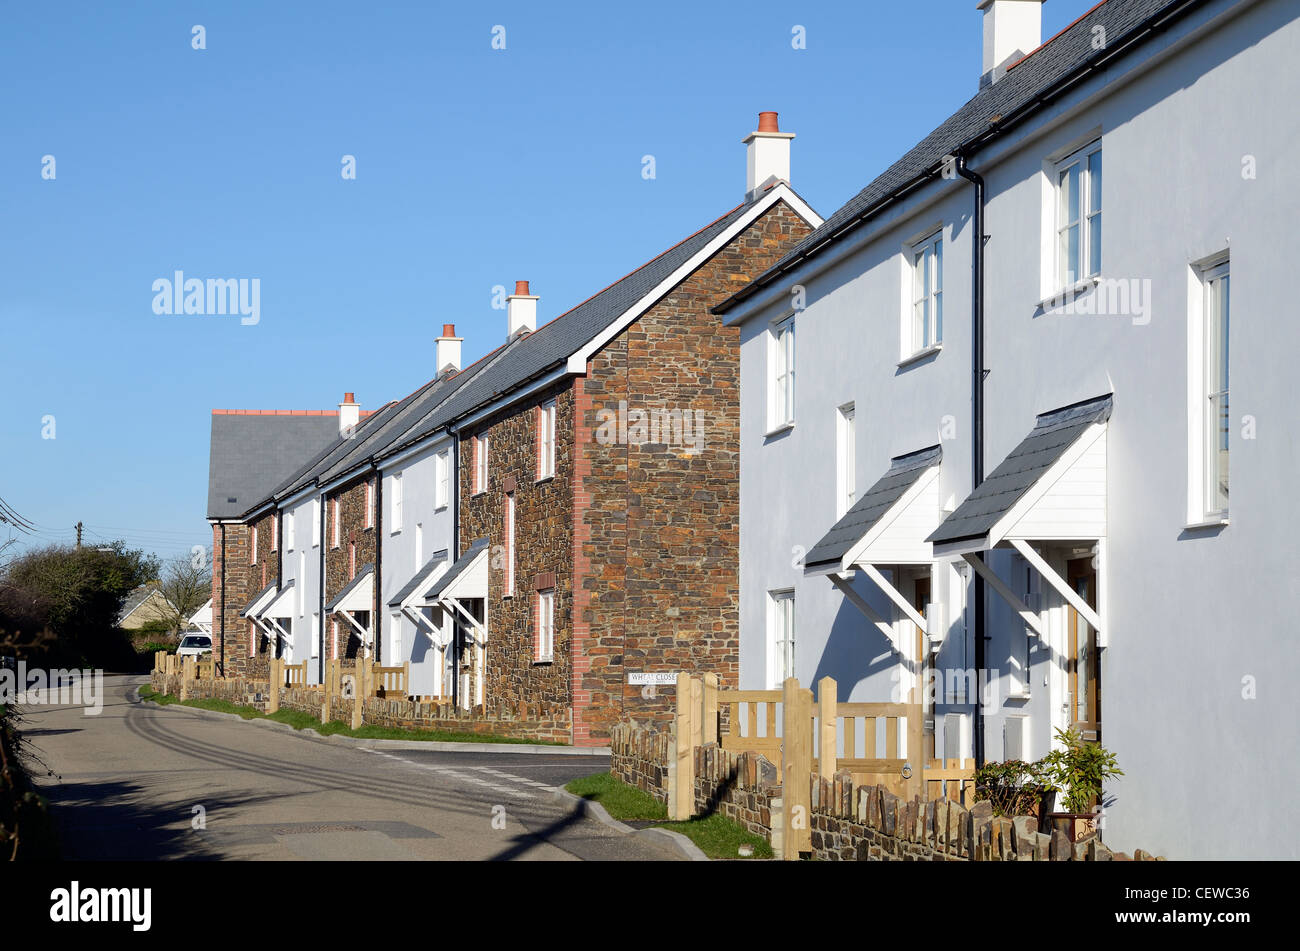 A new affordable housing project in rural cornwall, uk Stock Photo